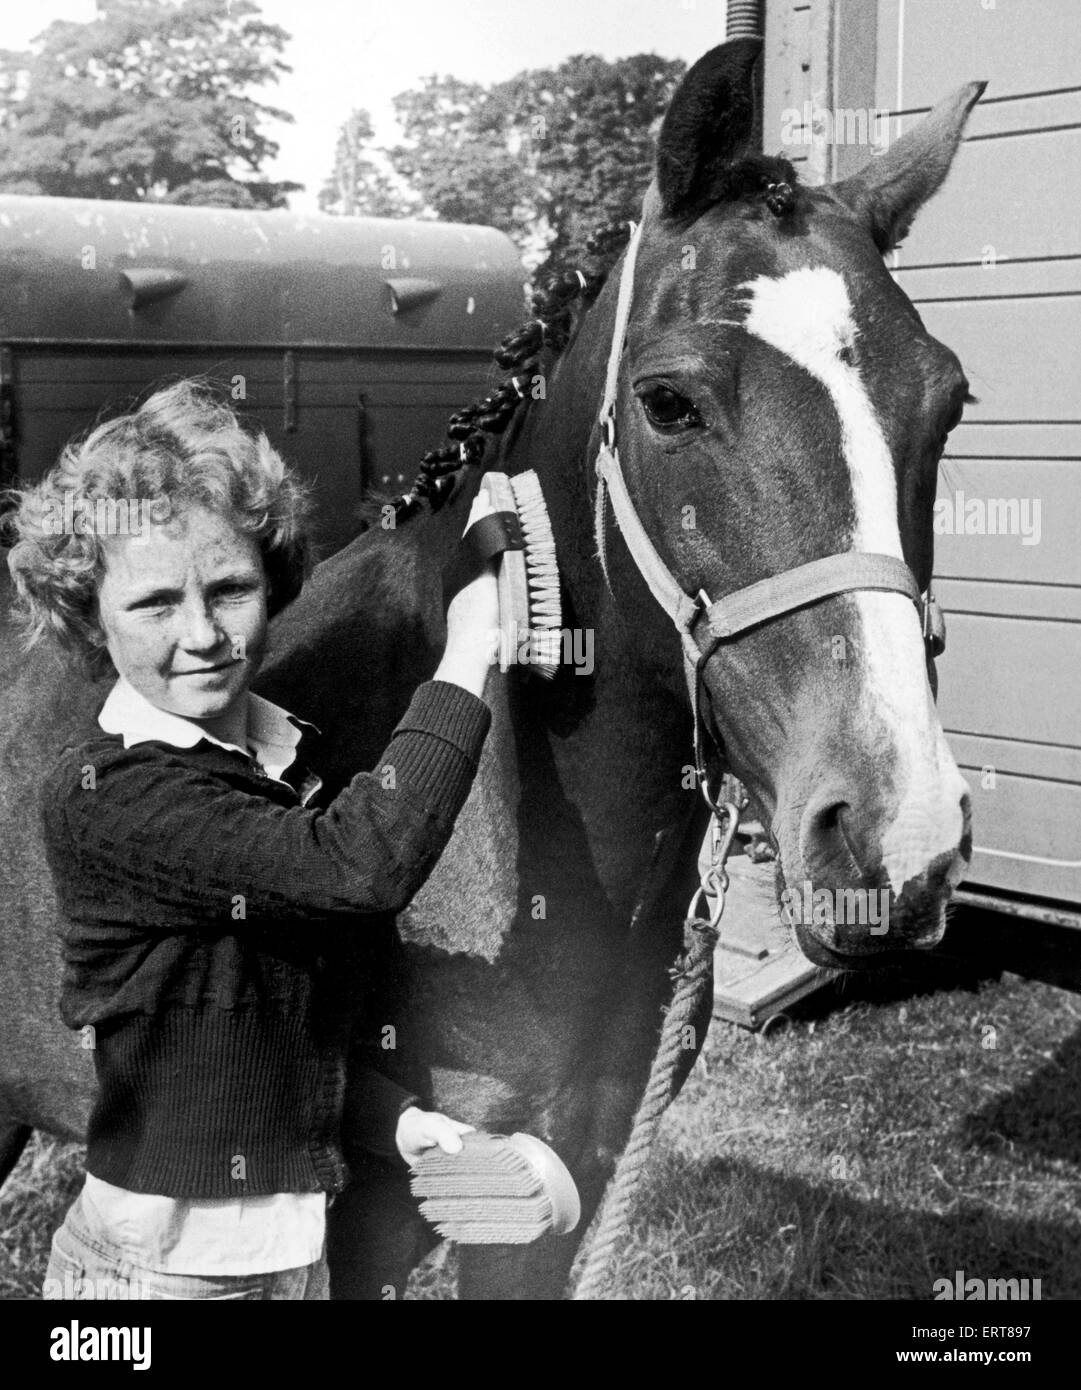 14 year old Julie Simpson brushing a horse at Hutton Rudby agricultural show. 28th August 1978. - Stock Image